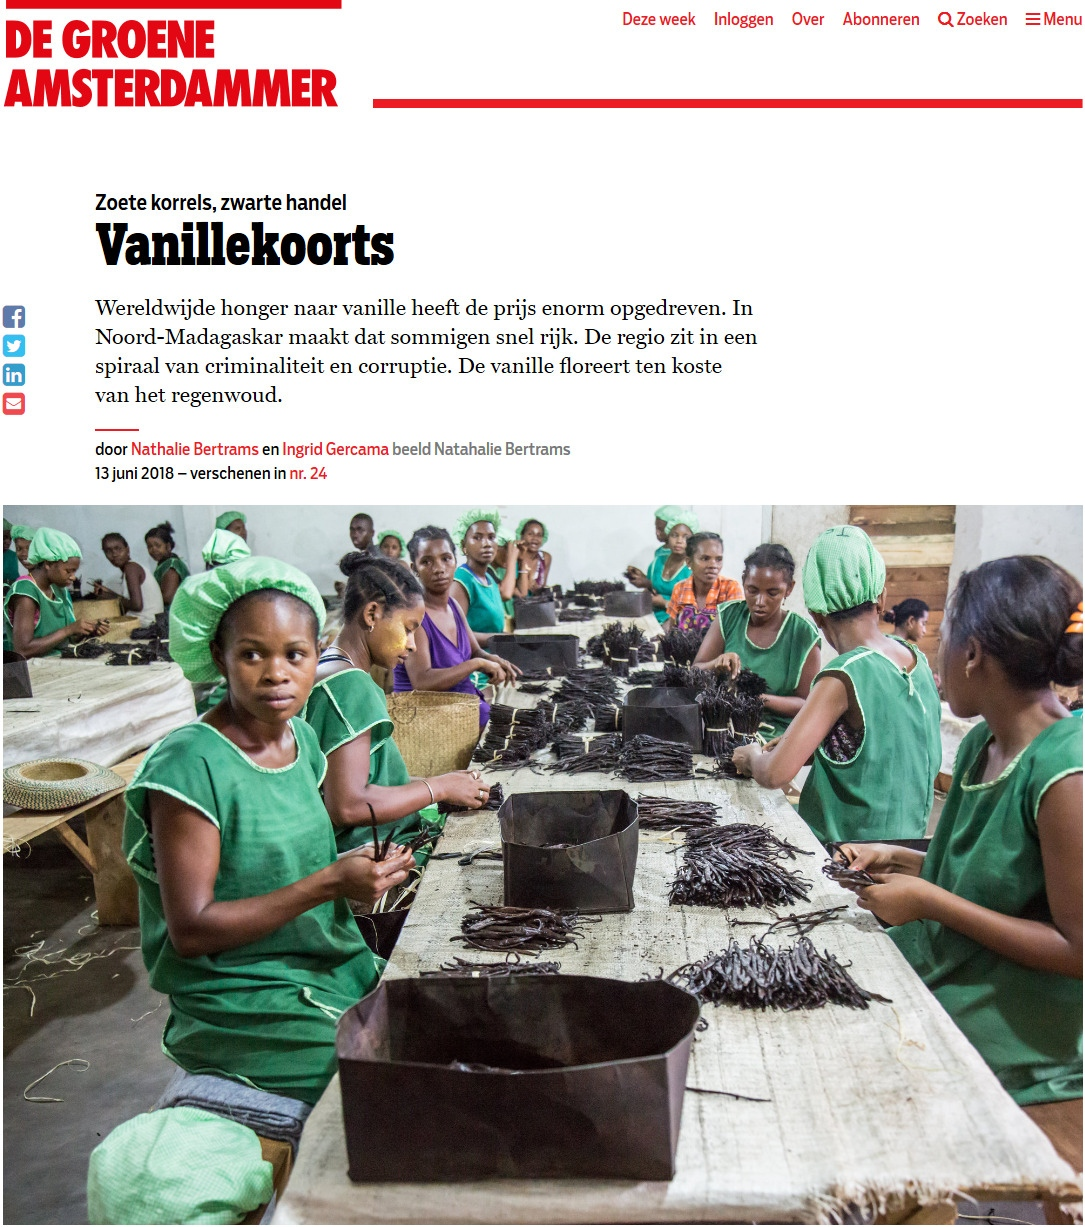 Art and Documentary Photography - Loading FireShot_Capture_034_-_Vanillekoorts_____De_Groene_Amst__-_https___www.groene.nl_artikel_vanillekoorts.jpg